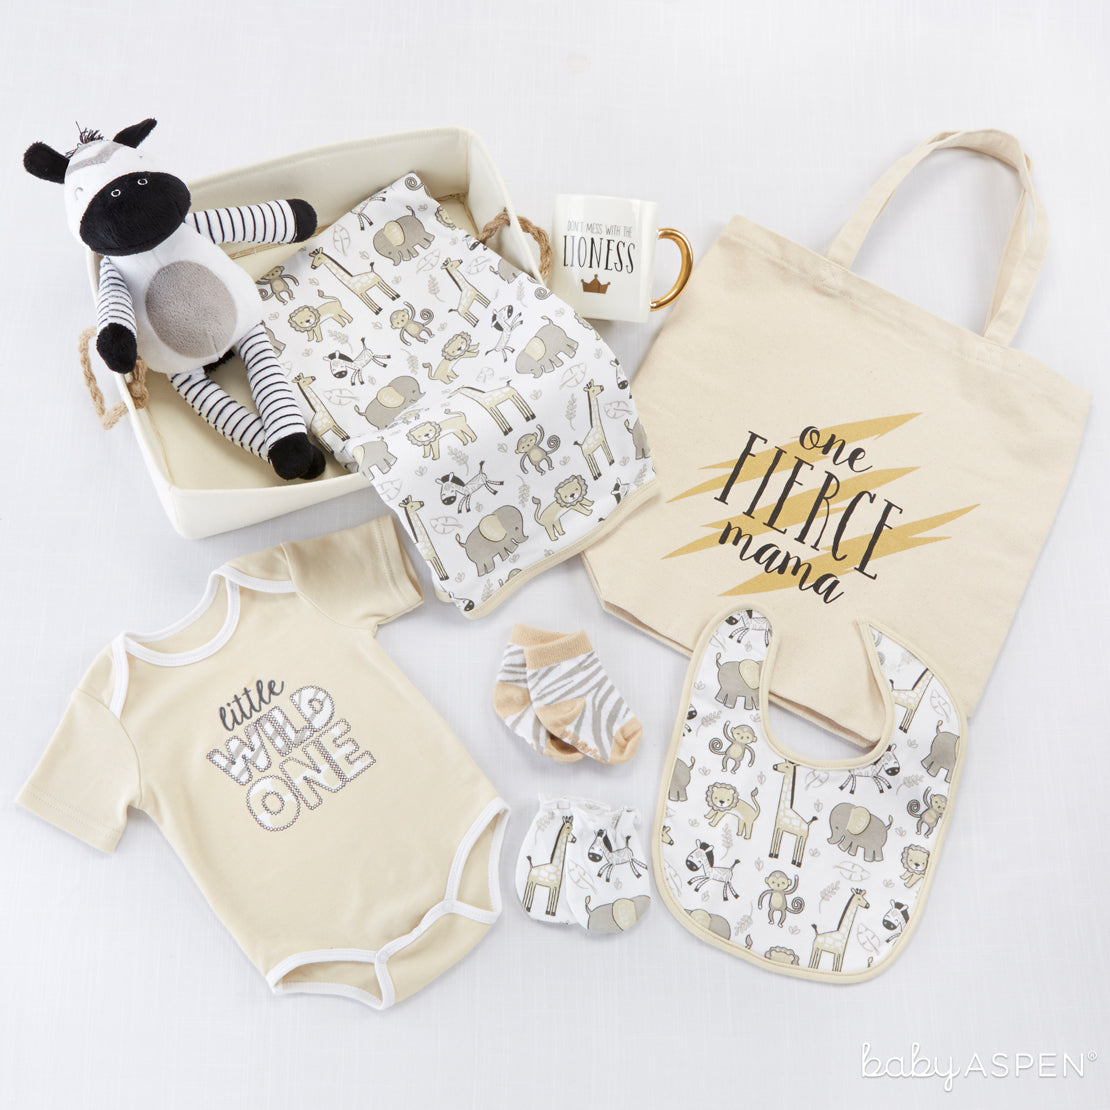 Safari Gift Set | Go Wild With Safari Themed Baby Gifts | Baby Aspen